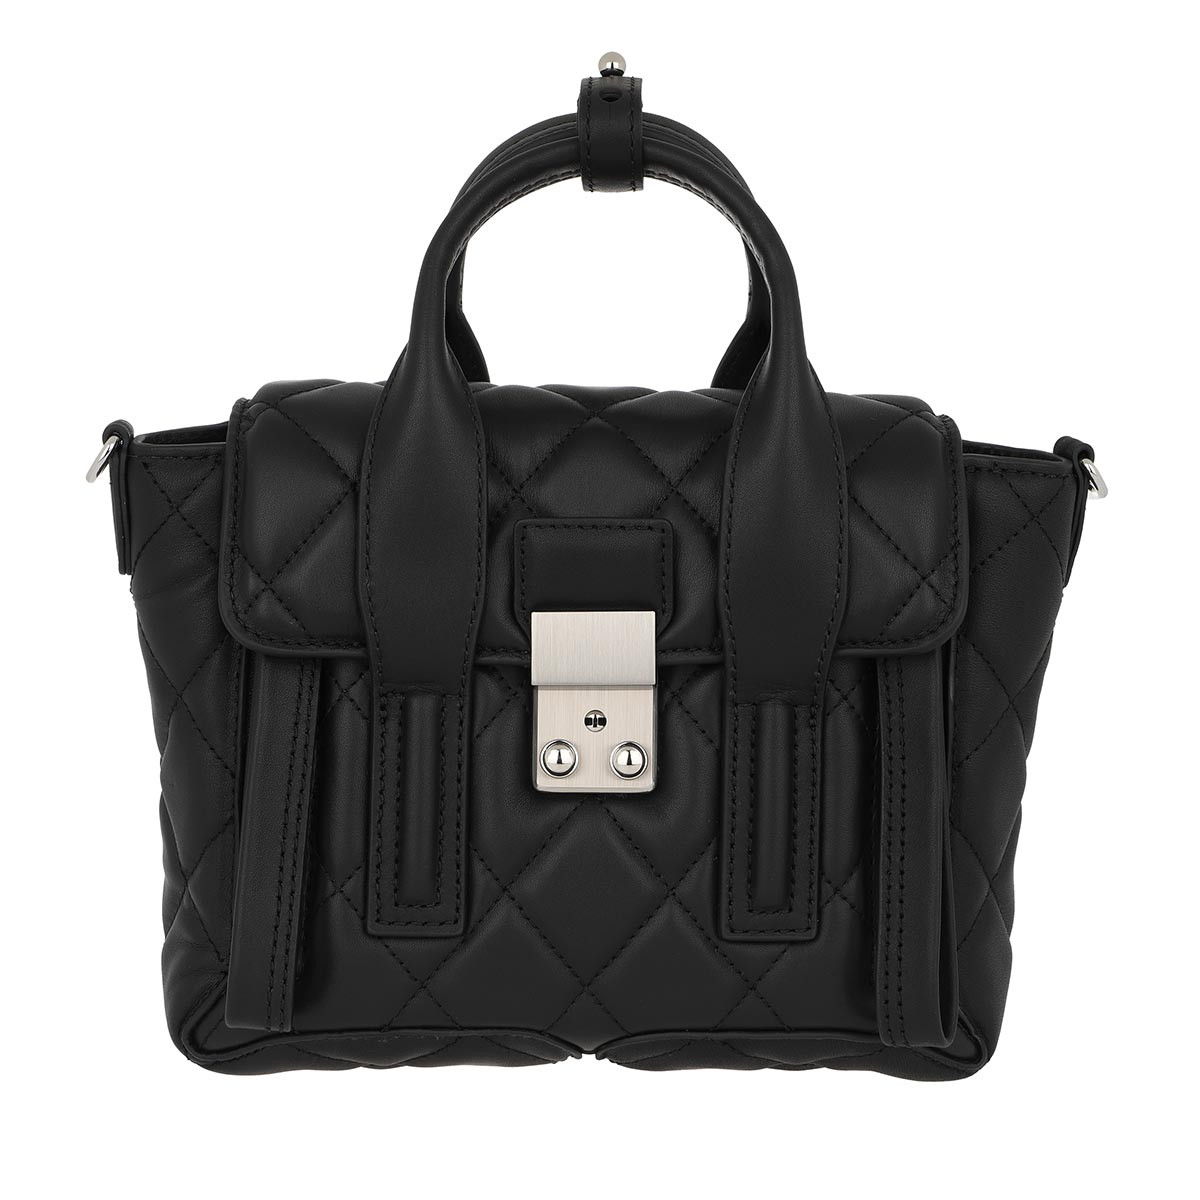 3.1 Phillip Lim Satchel Bag - Pashli Mini Satchel Black - in schwarz - für Damen